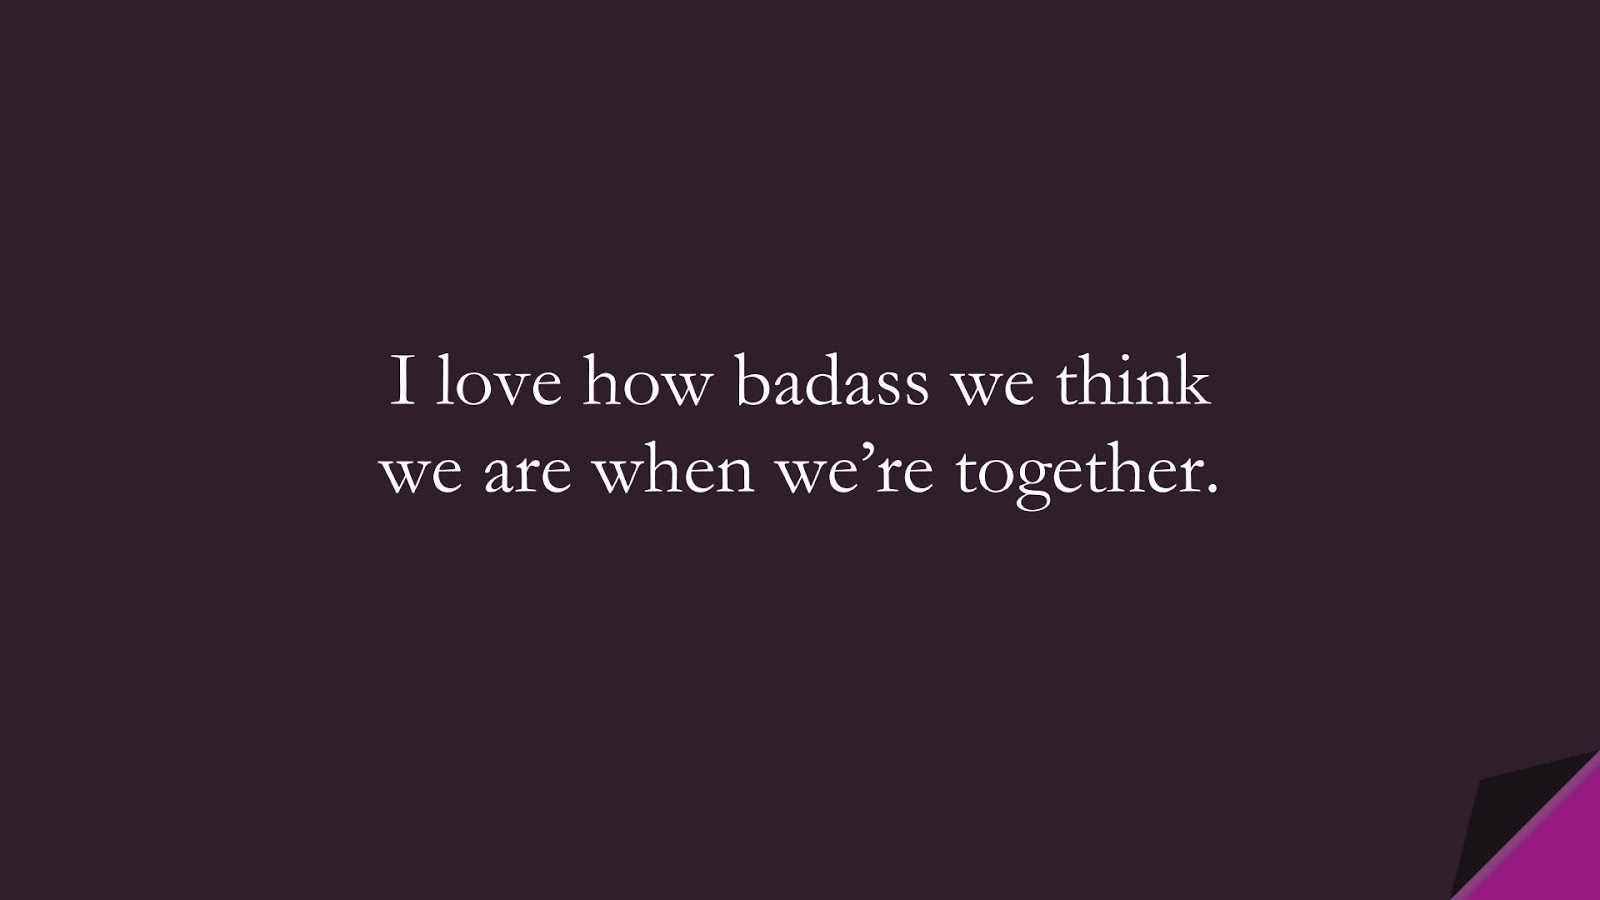 I love how badass we think we are when we're together.FALSE